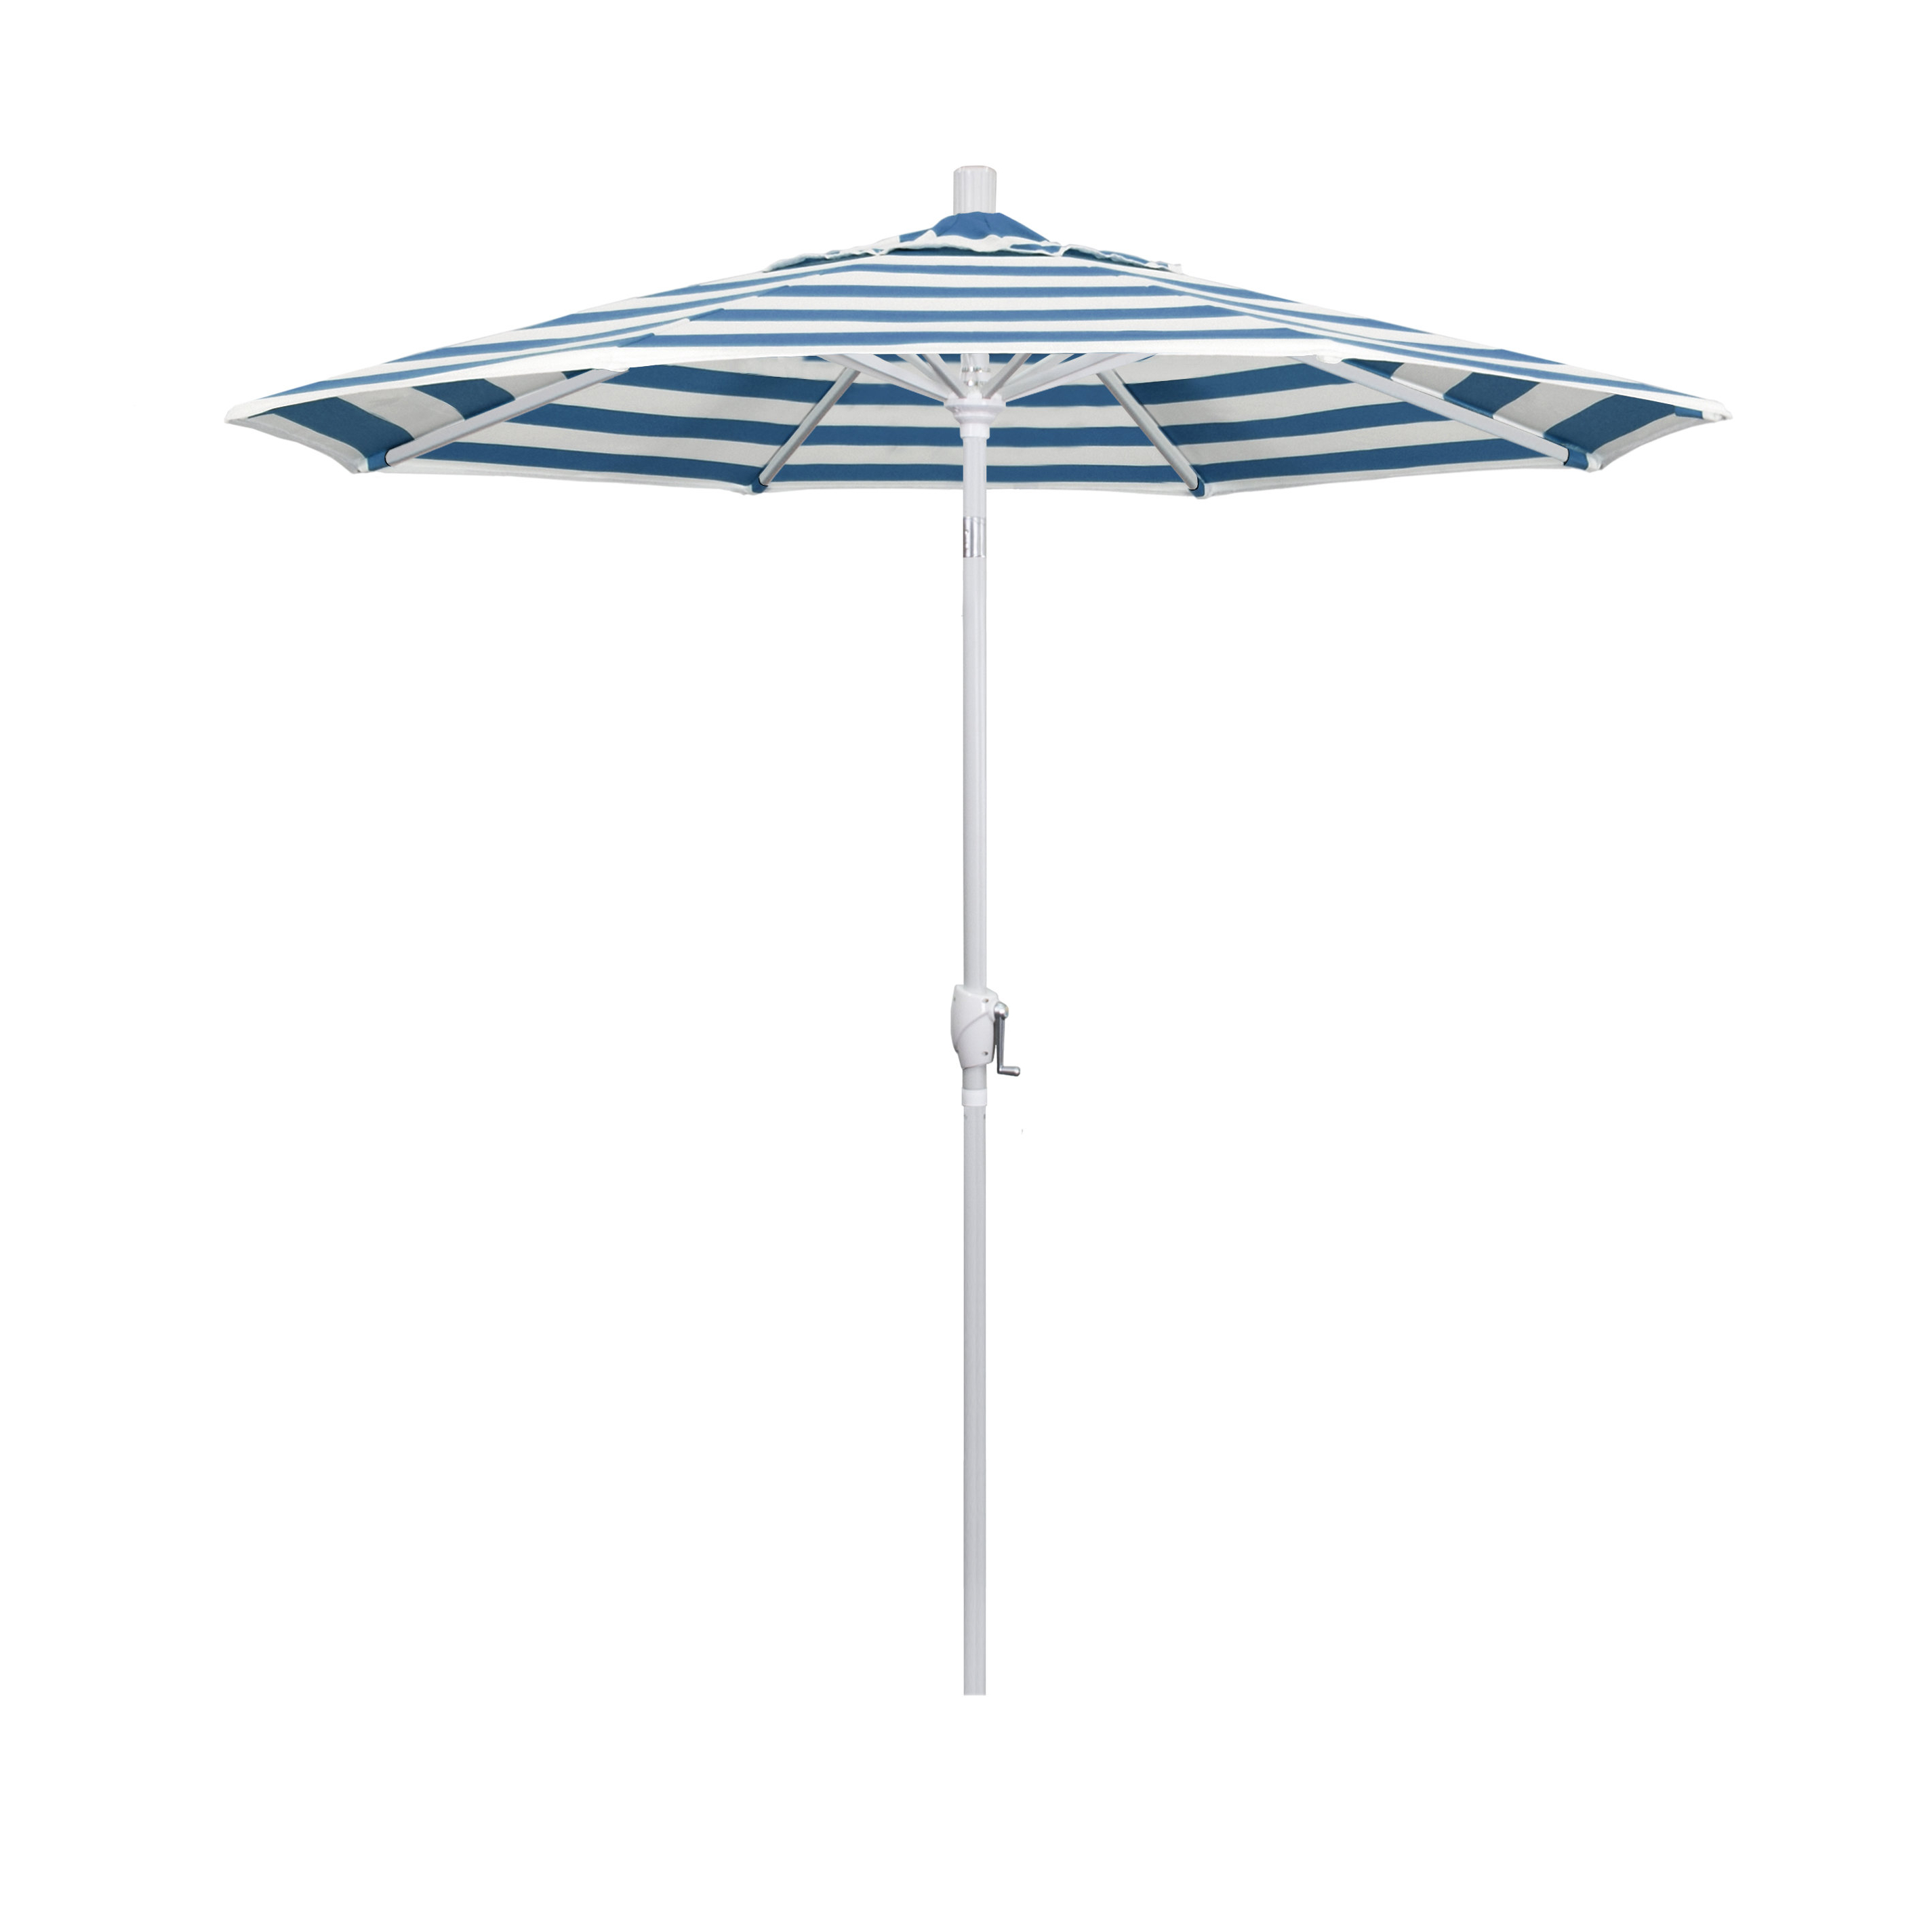 7.5' Market Sunbrella Umbrella Throughout 2019 Wiebe Auto Tilt Square Market Sunbrella Umbrellas (Gallery 12 of 20)